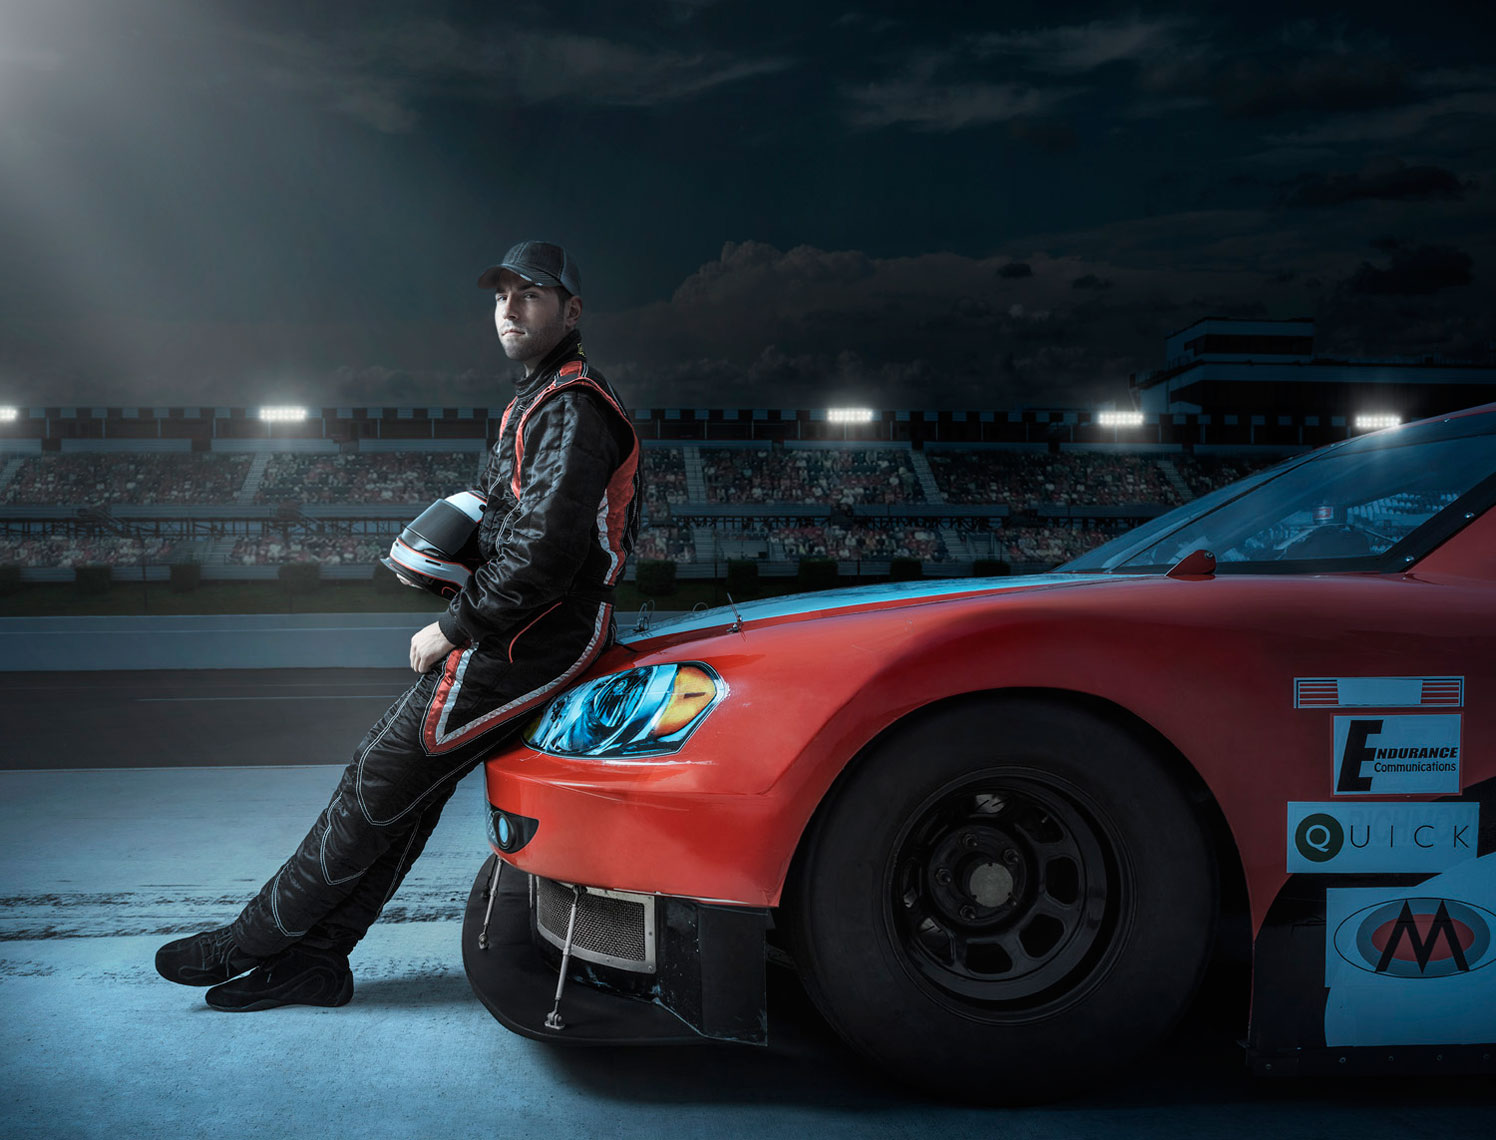 NASCAR Driver and Car Night Scene: CORBIS